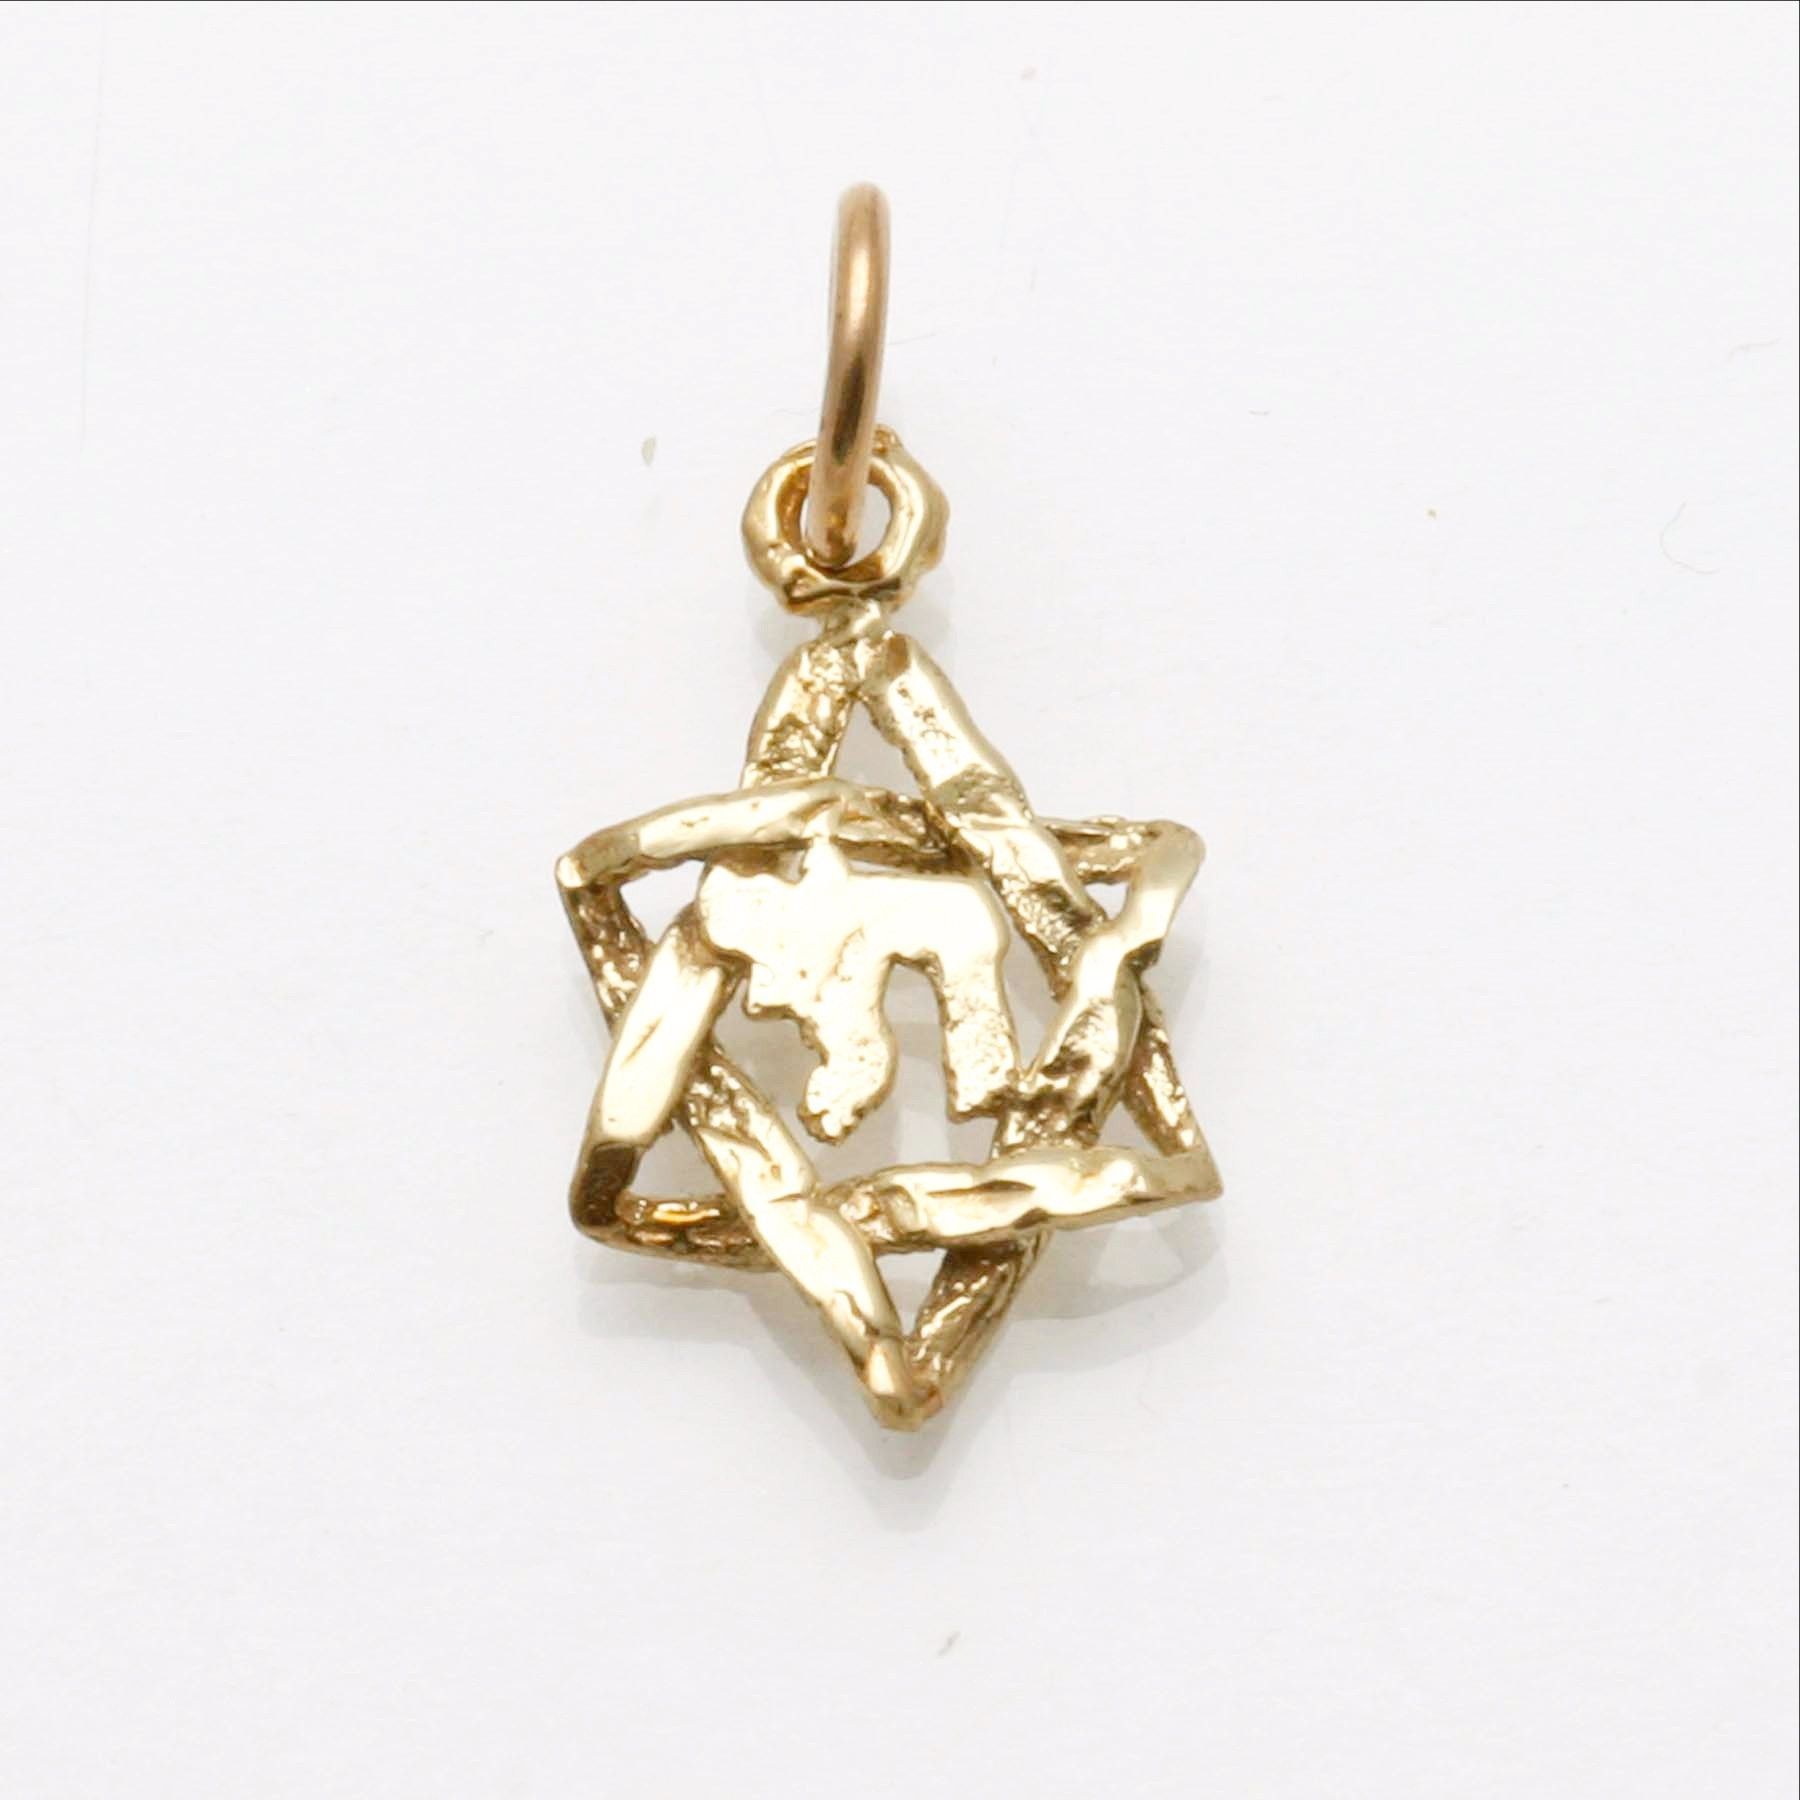 jeweler necklaces pendant and shop best son jewelers gold diamond chai alpharetta white iroff